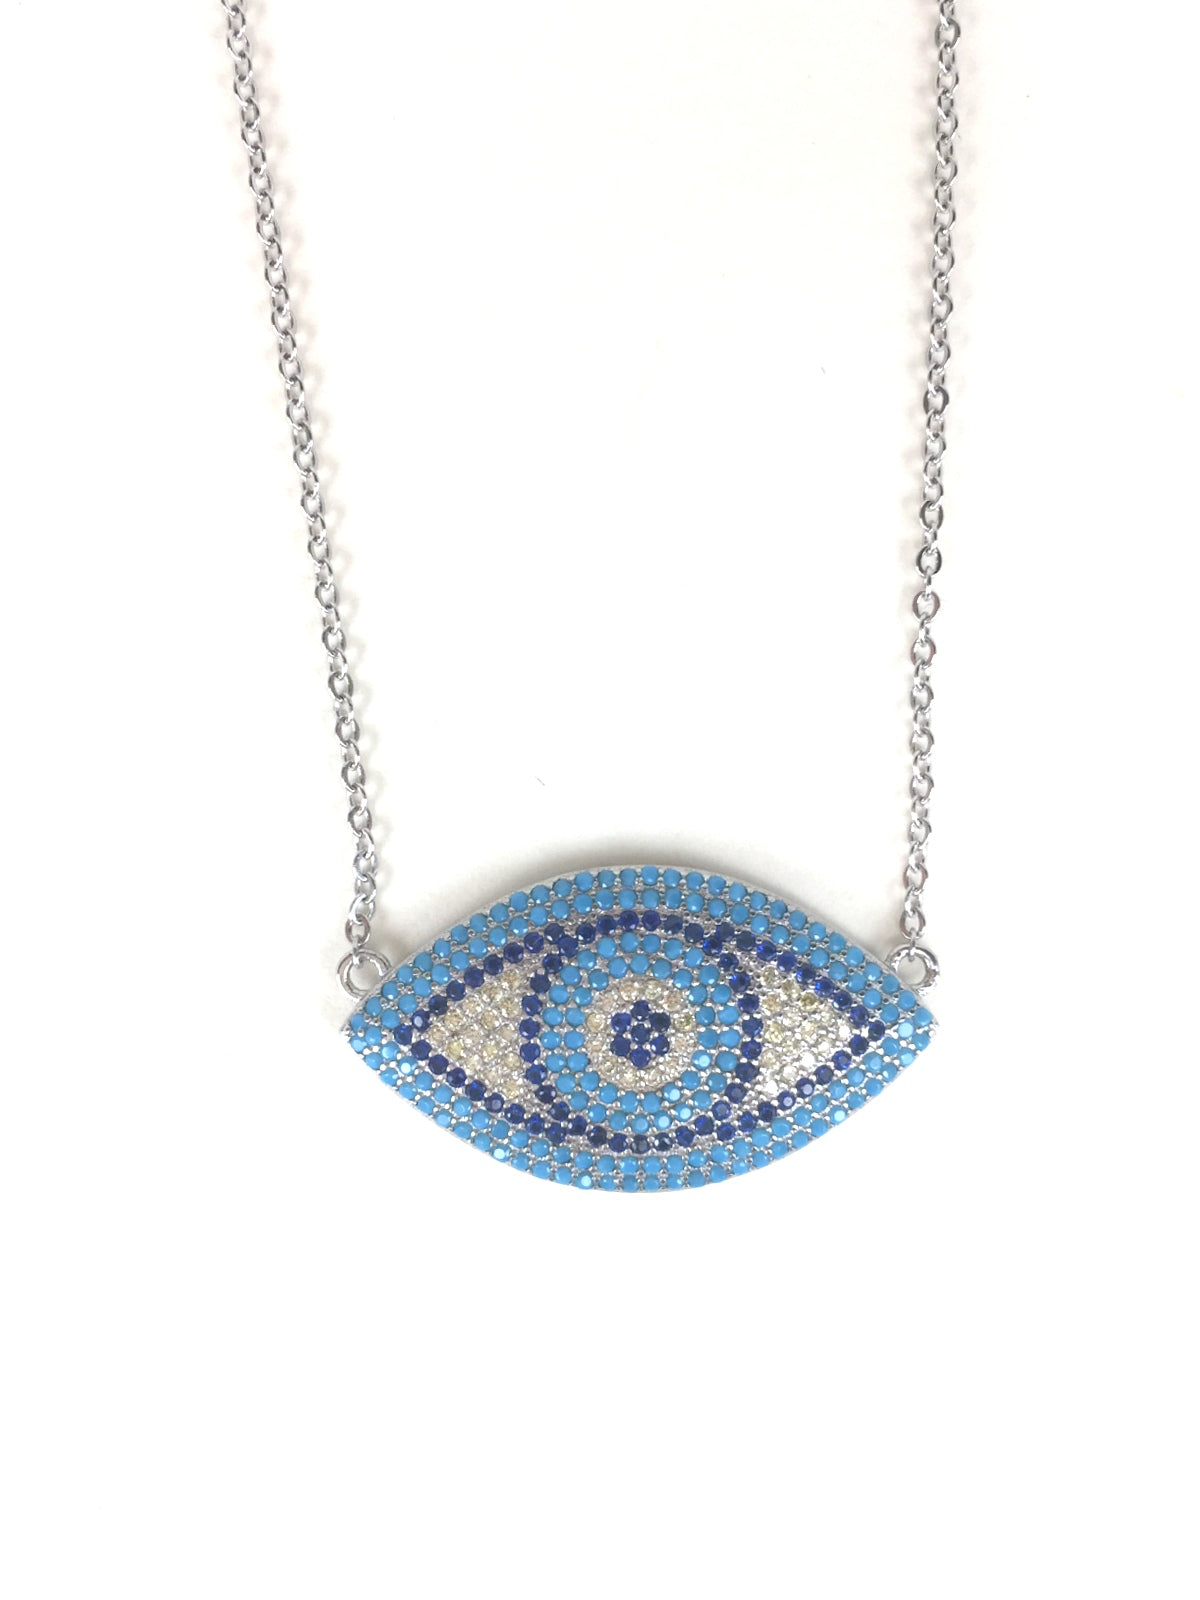 BIG EVIL EYE PAVE CZ STERLING SILVER NECKLACE